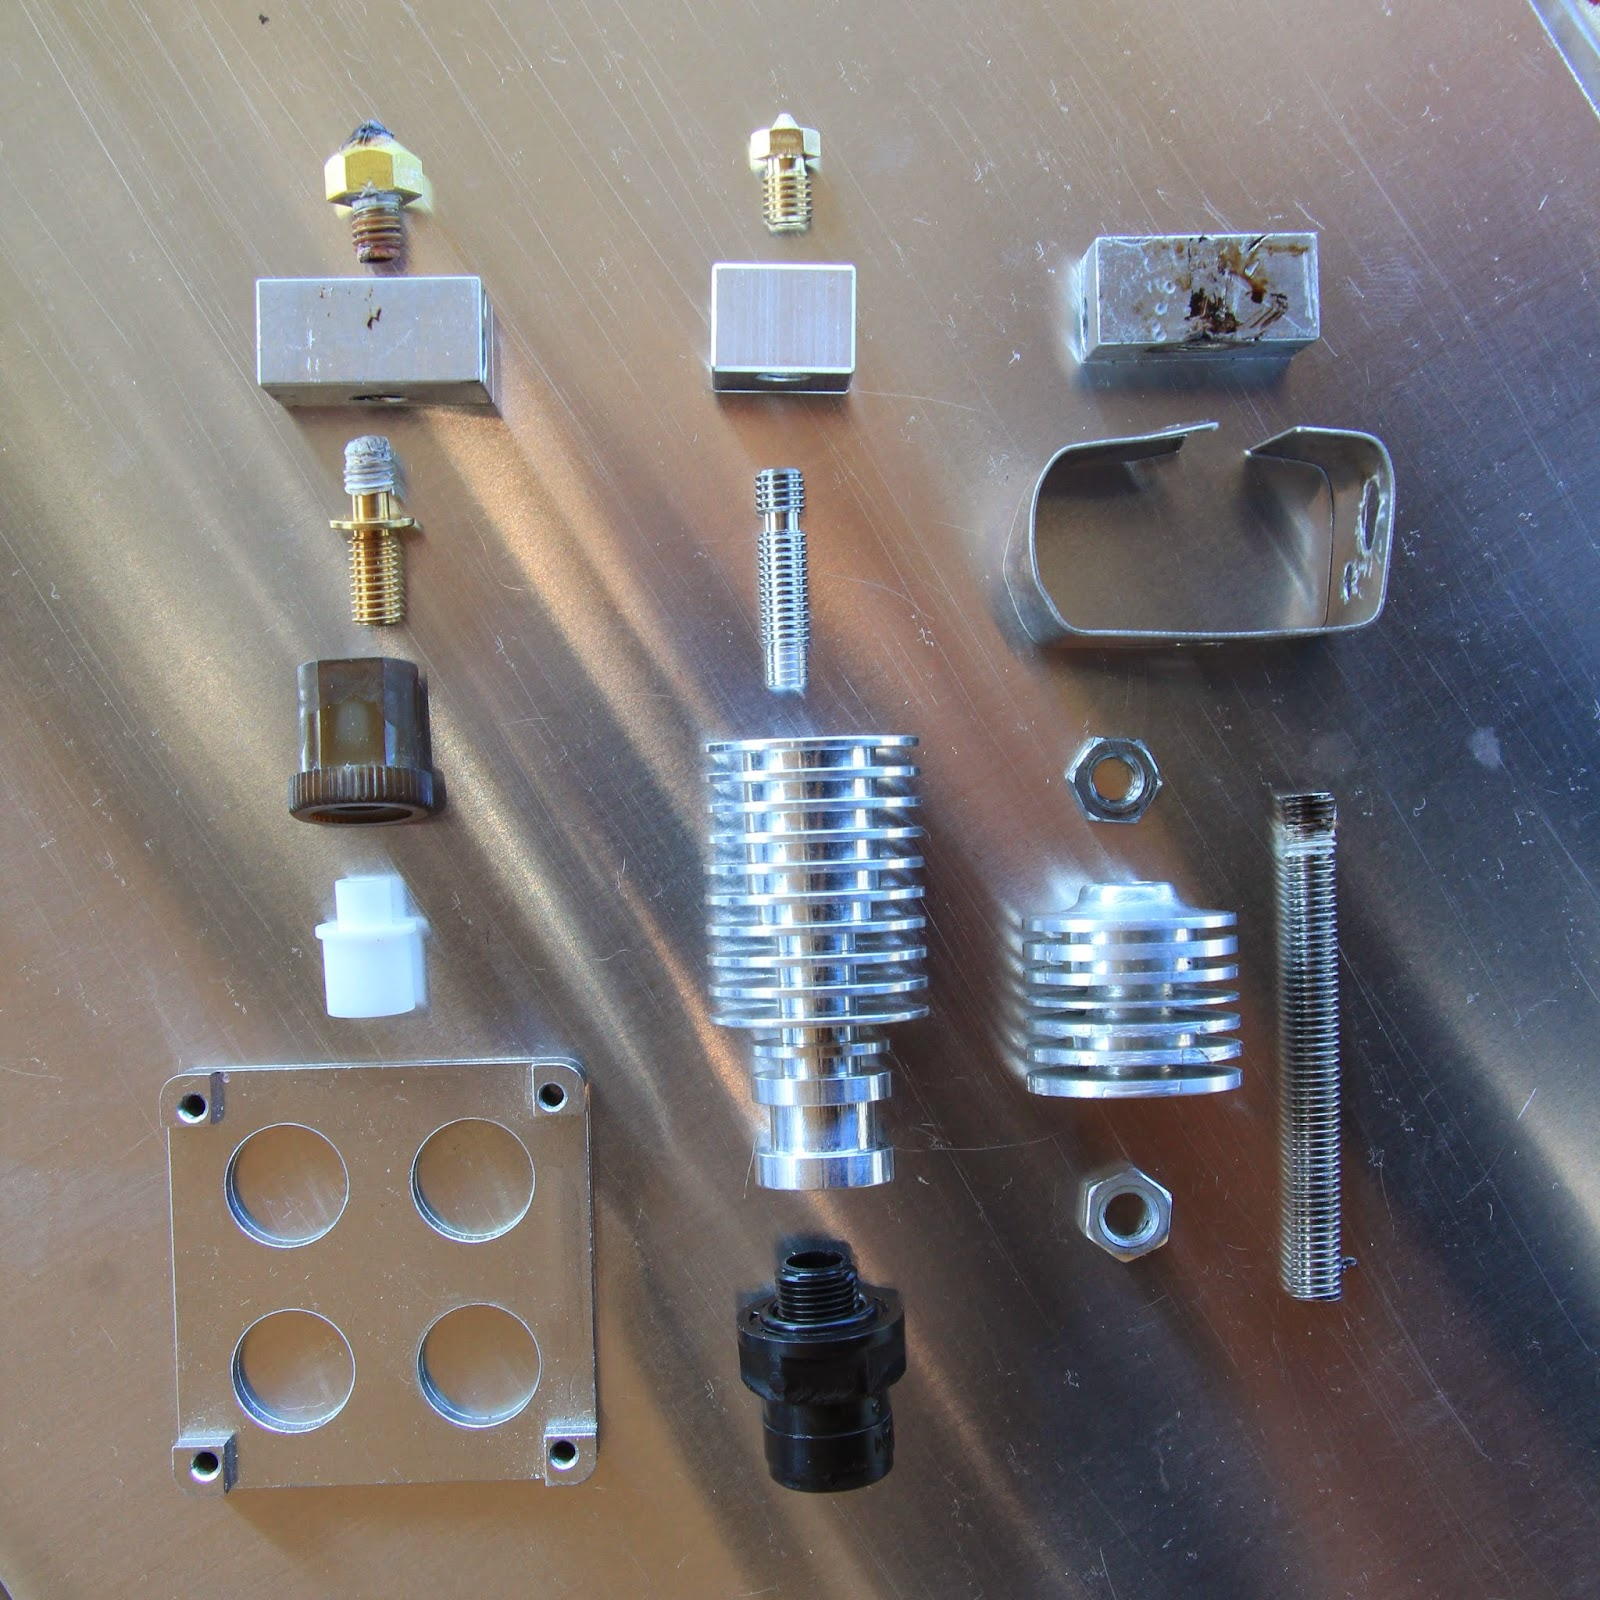 3D printer improvements: Thoughts and hints around hot ends